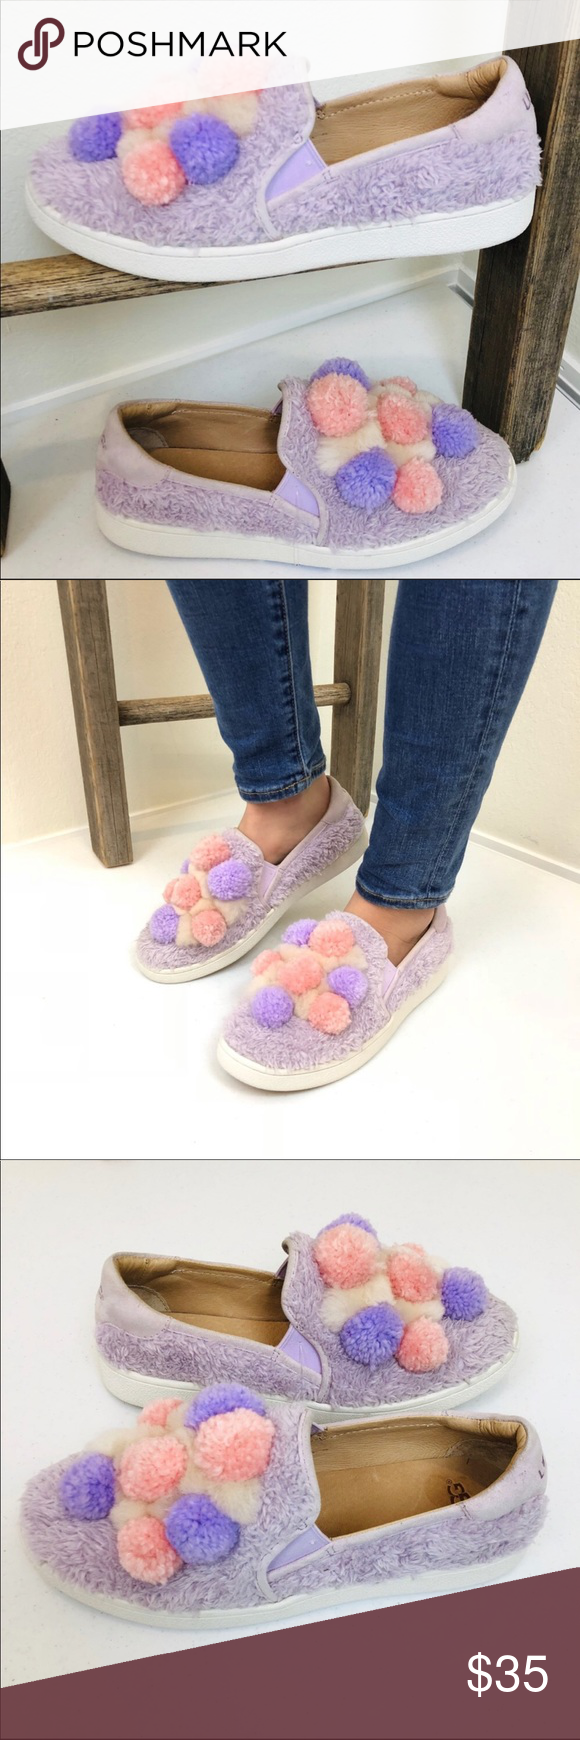 0607d4bd48e ➖UGG➖ Ricci Pom Pom Slip On Shoes Cozy cute slip on shoes. Elastic ...